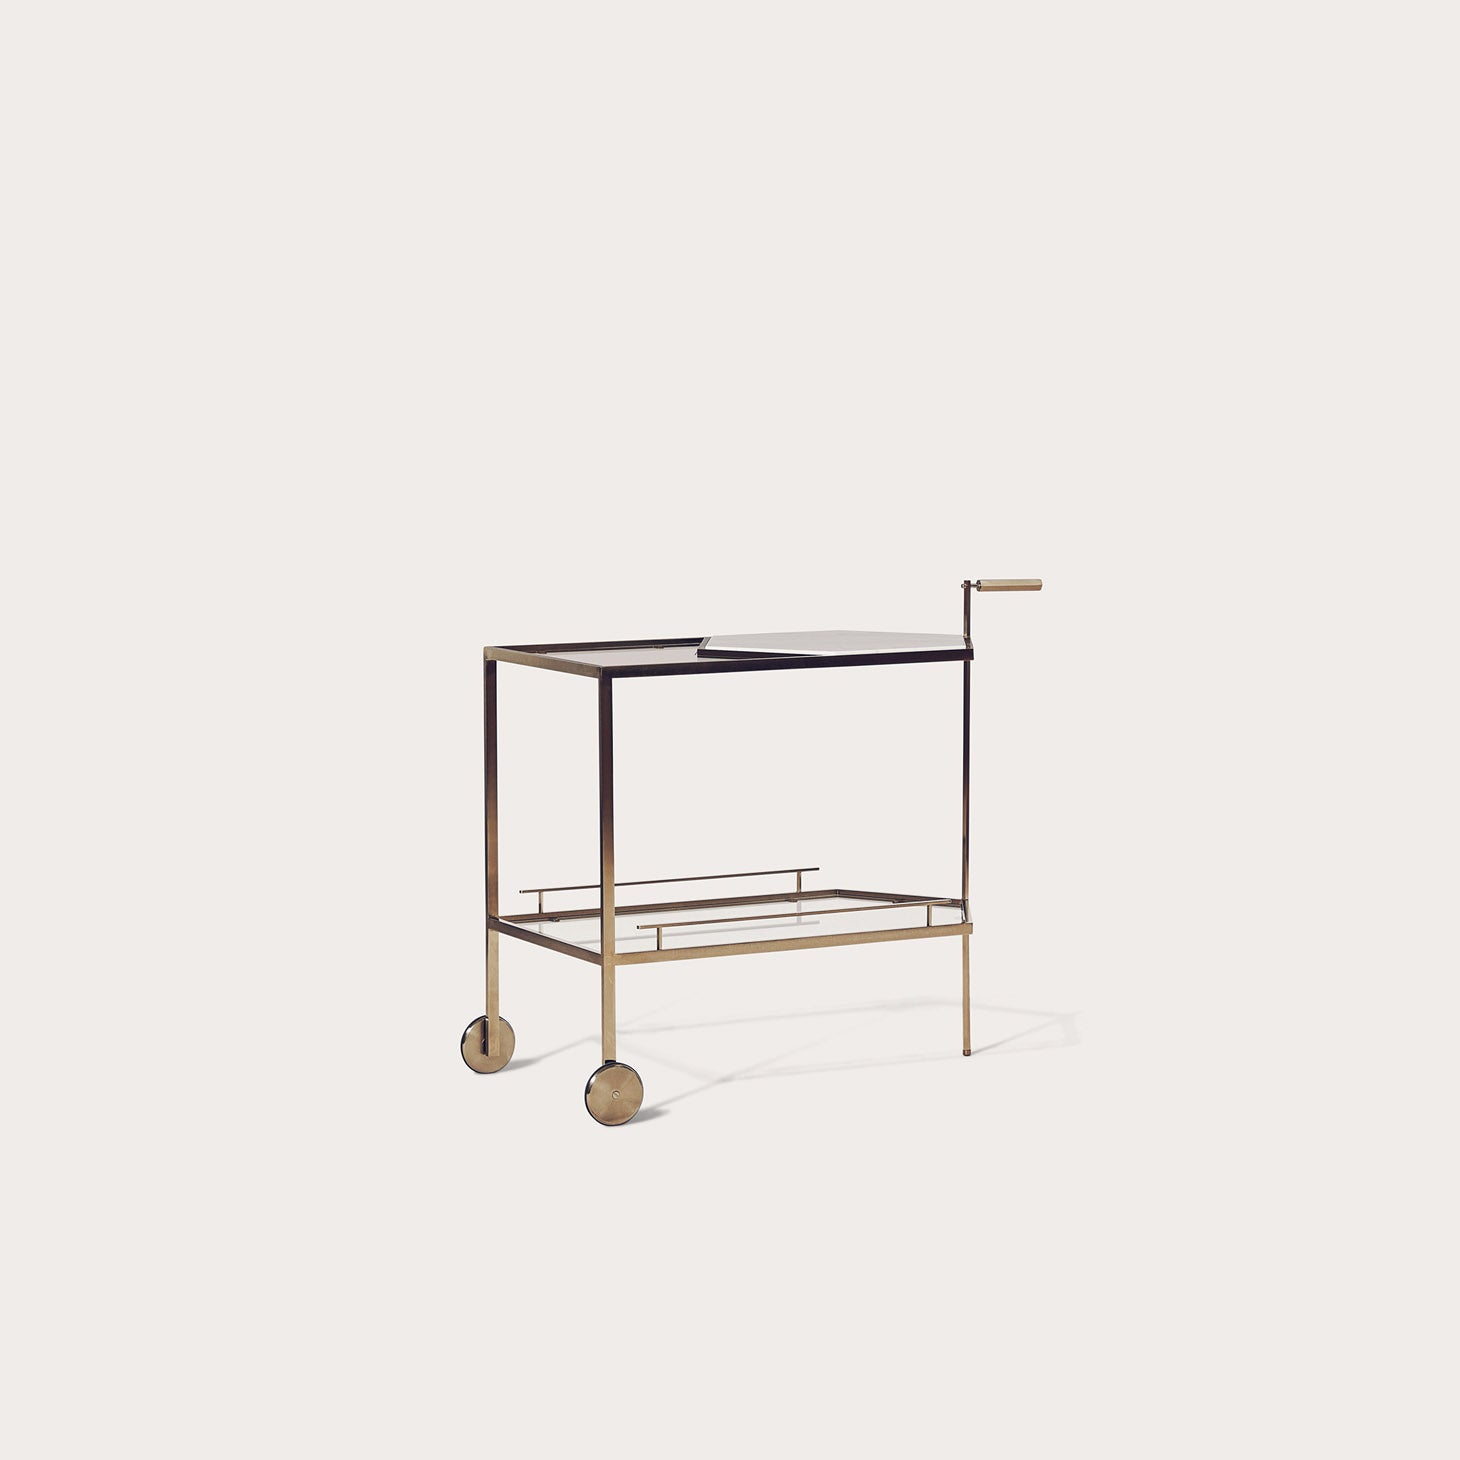 Gin Lane Storage Yabu Pushelberg Designer Furniture Sku: 782-220-10005